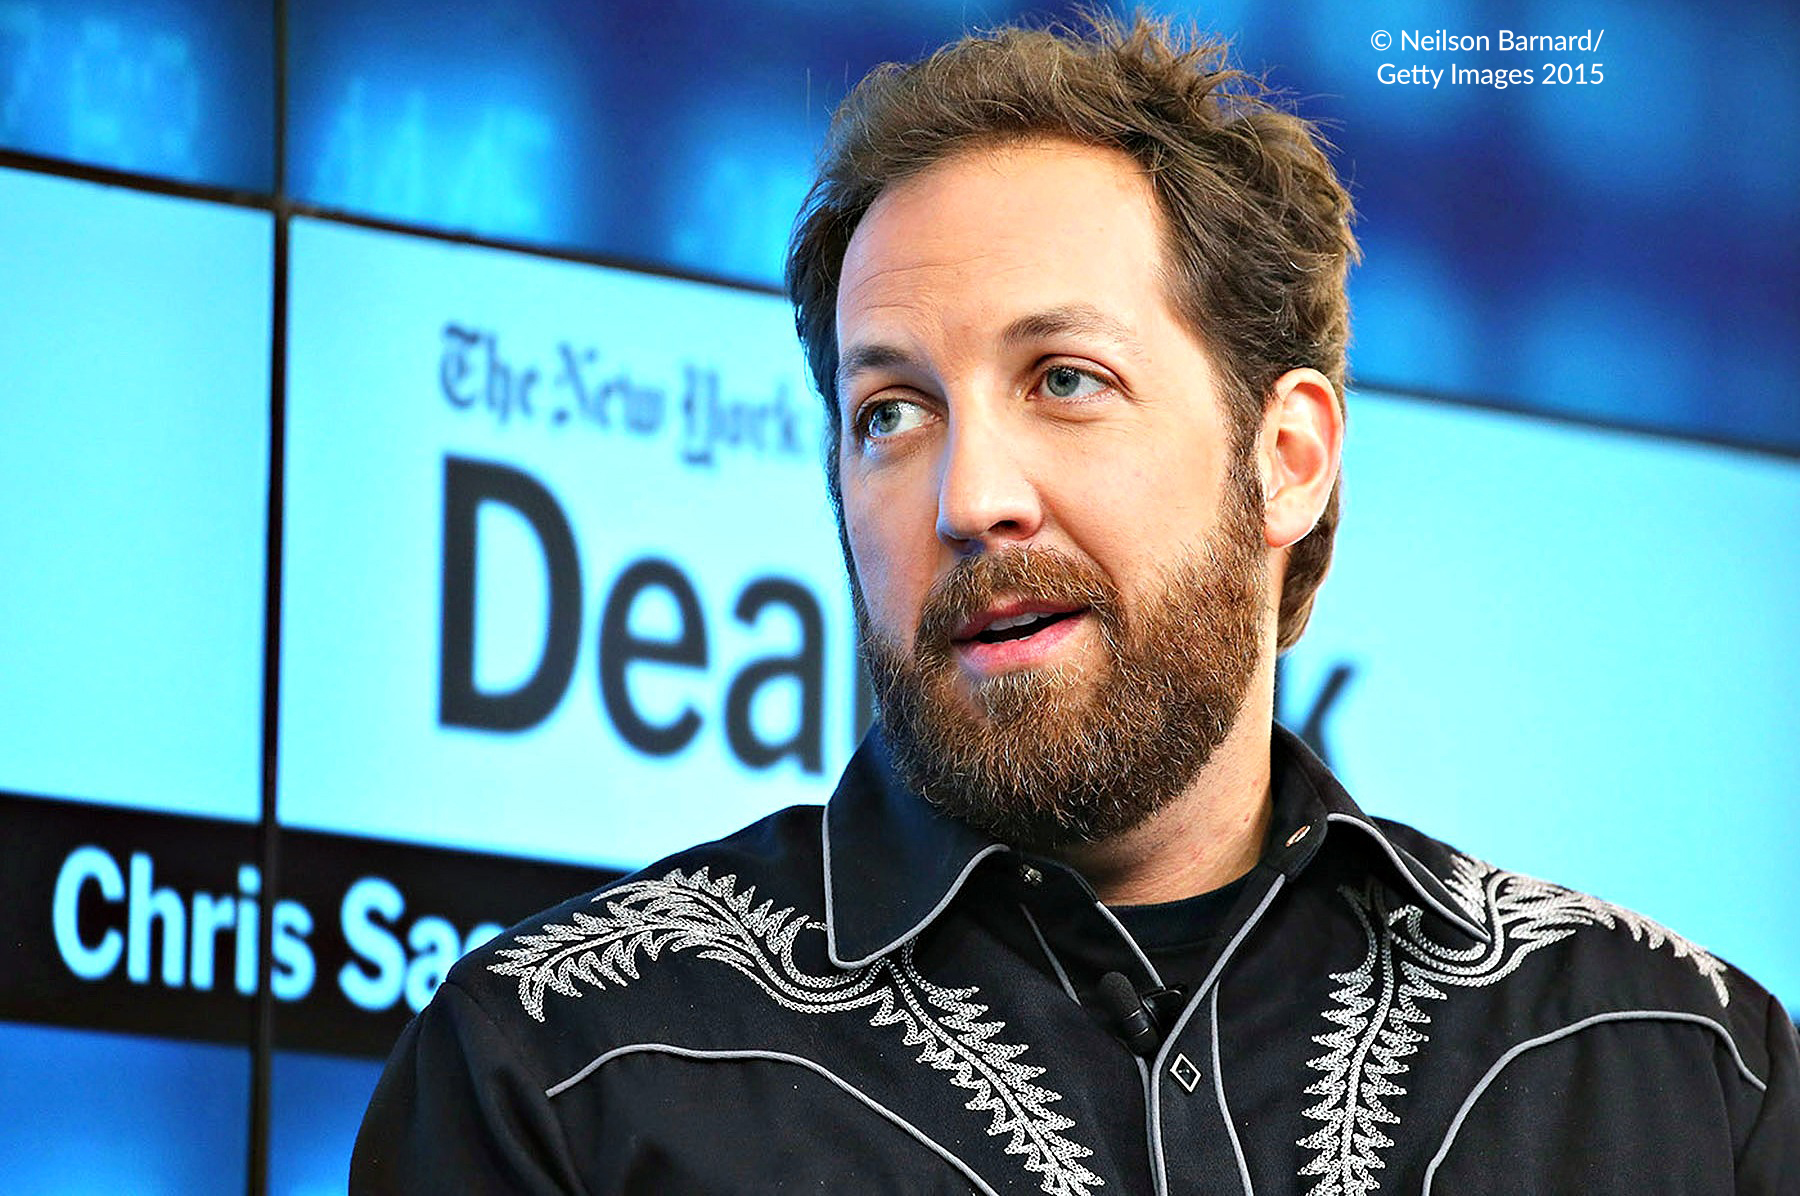 Chris Sacca speaking in New York, 2015